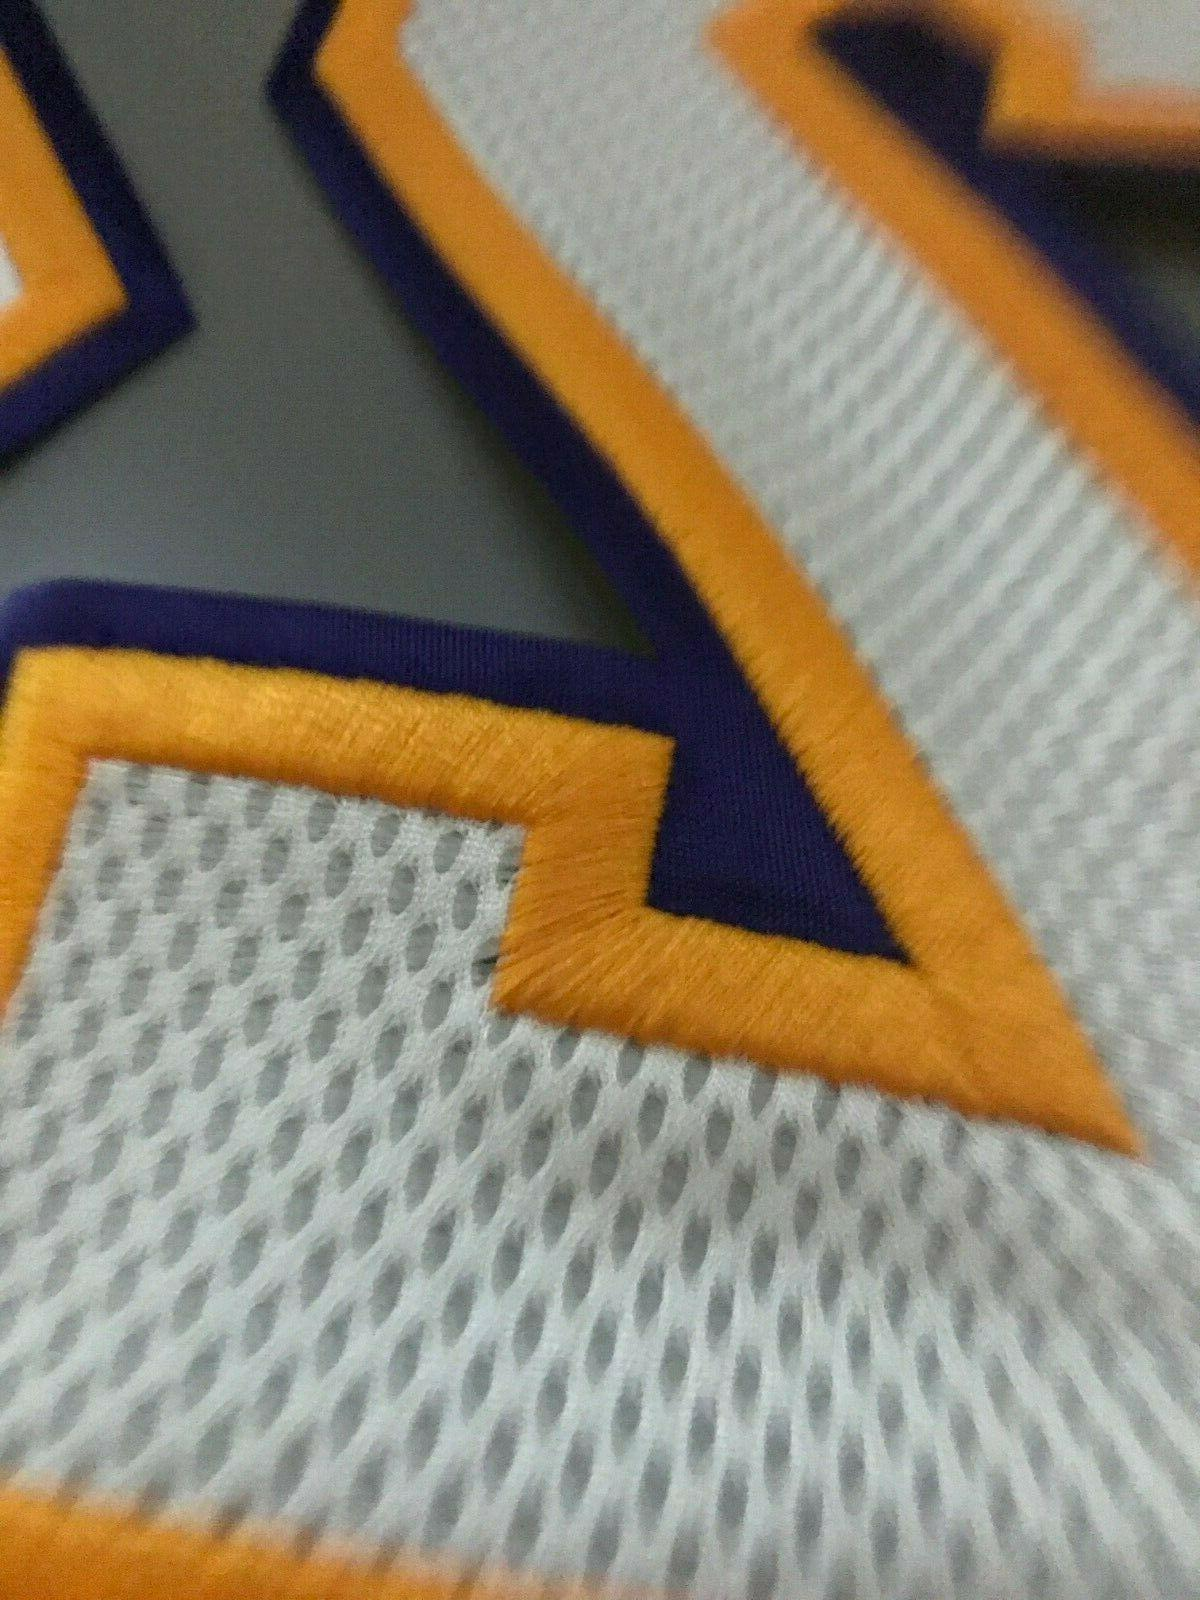 KOBE BRYANT #24 Mesh Adidas Official Jersey Pro Numbers Rev30